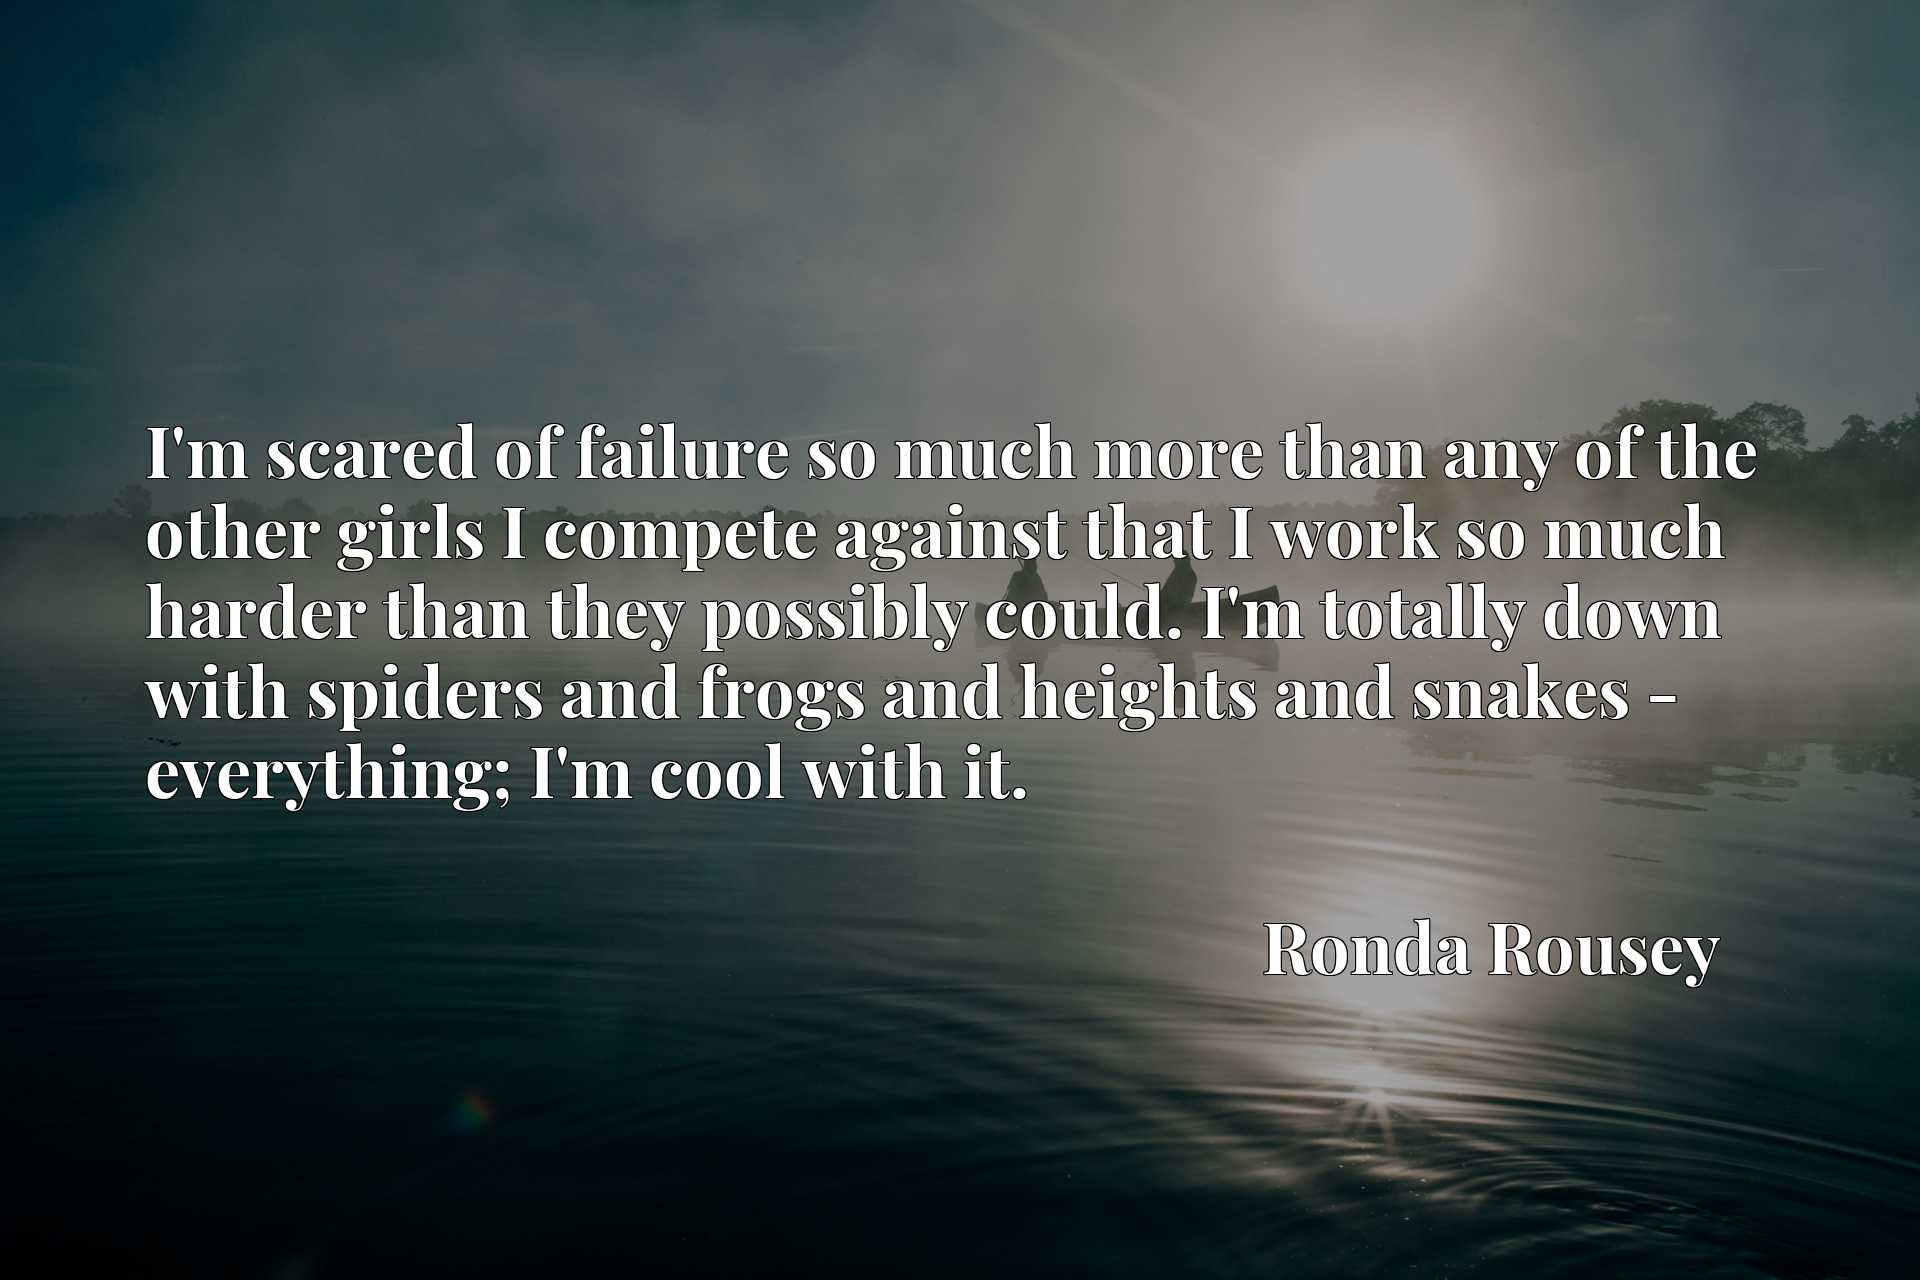 I'm scared of failure so much more than any of the other girls I compete against that I work so much harder than they possibly could. I'm totally down with spiders and frogs and heights and snakes - everything; I'm cool with it.